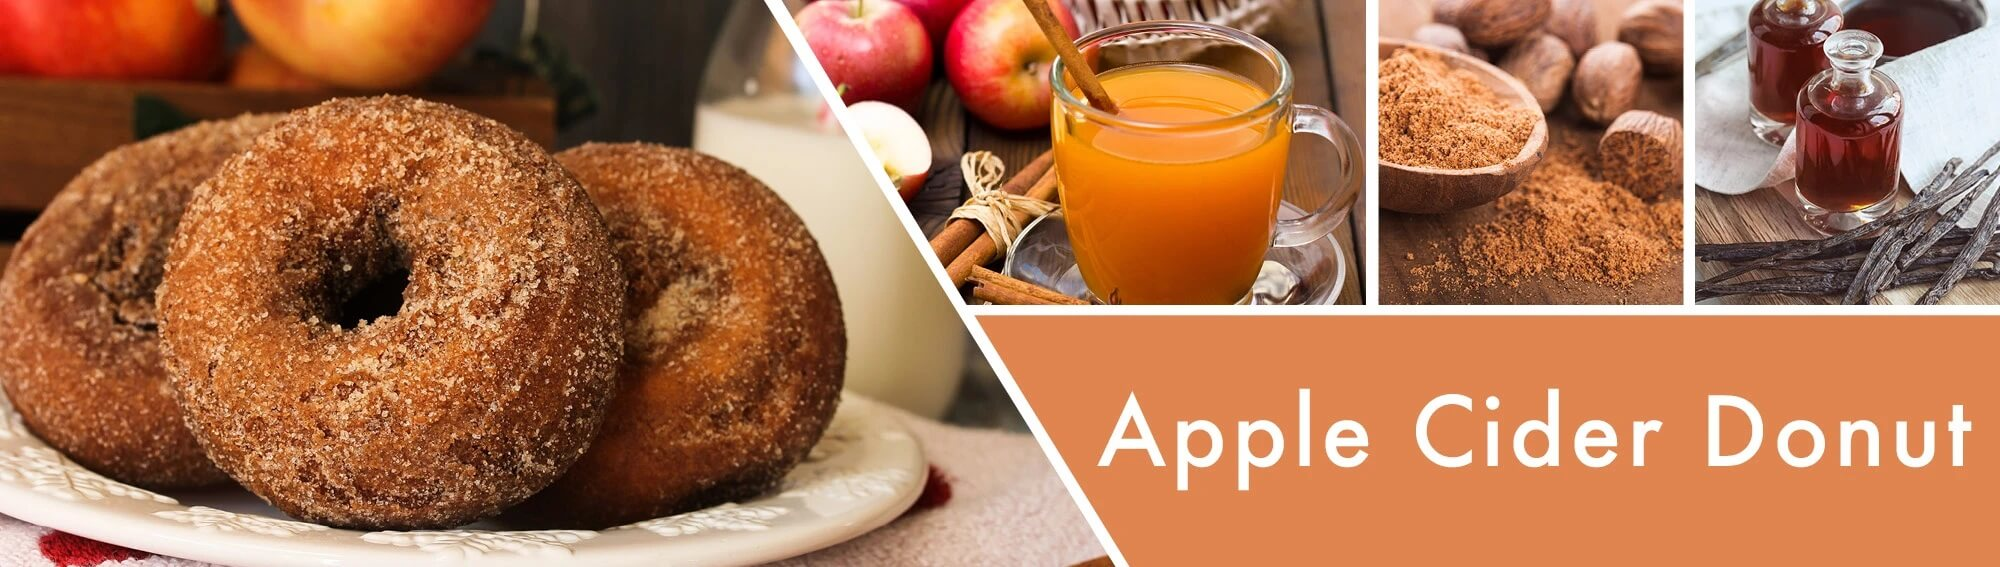 Apple-Cider-Donut-Banner